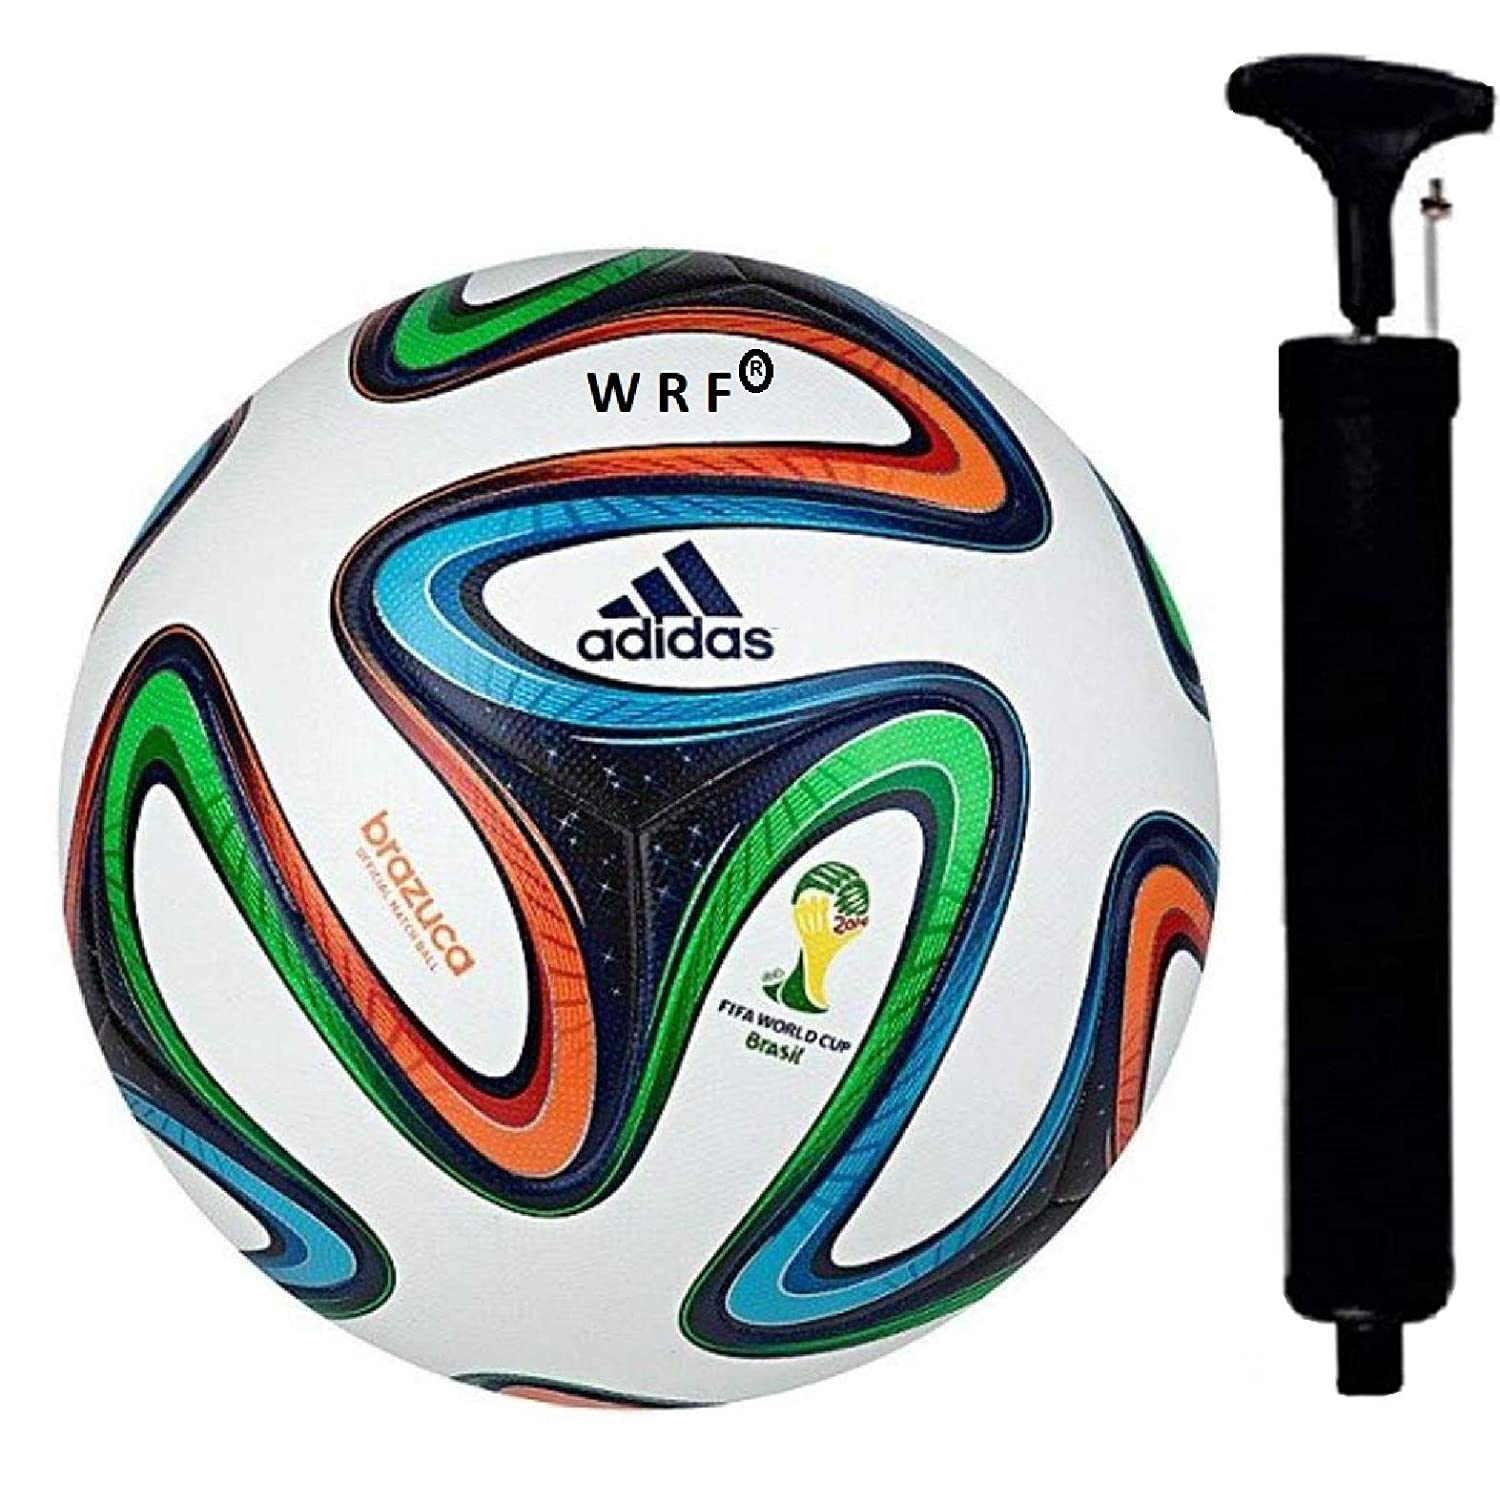 WRF Brazuca PU Football, Size 5,  Multicolour  Match Balls